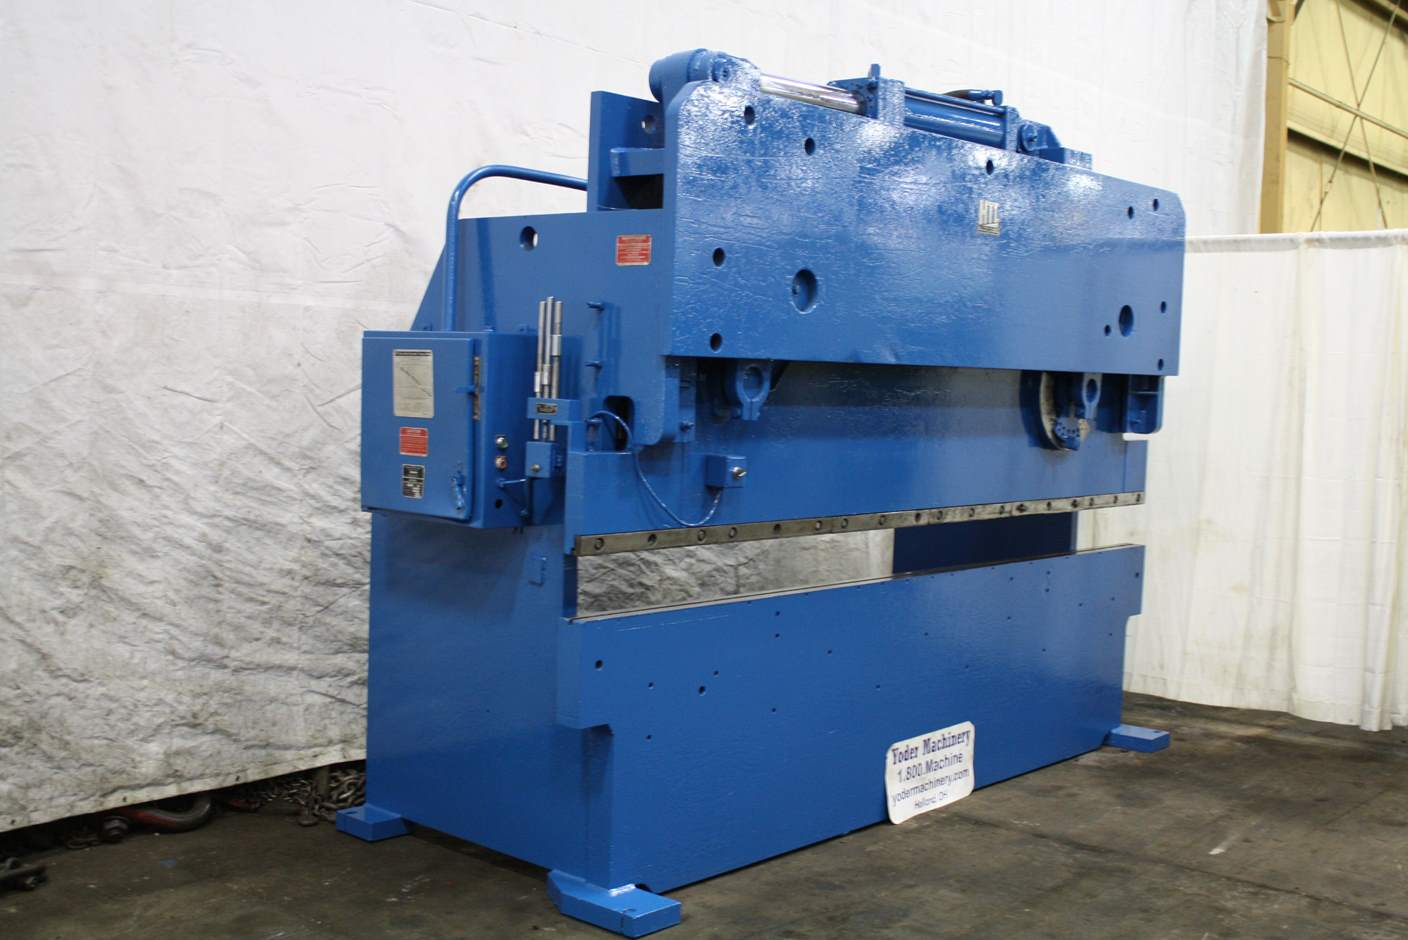 Used Press Brakes For Sale - 155 TON X 12 HTC HYDRAULIC PRESS BRAKE